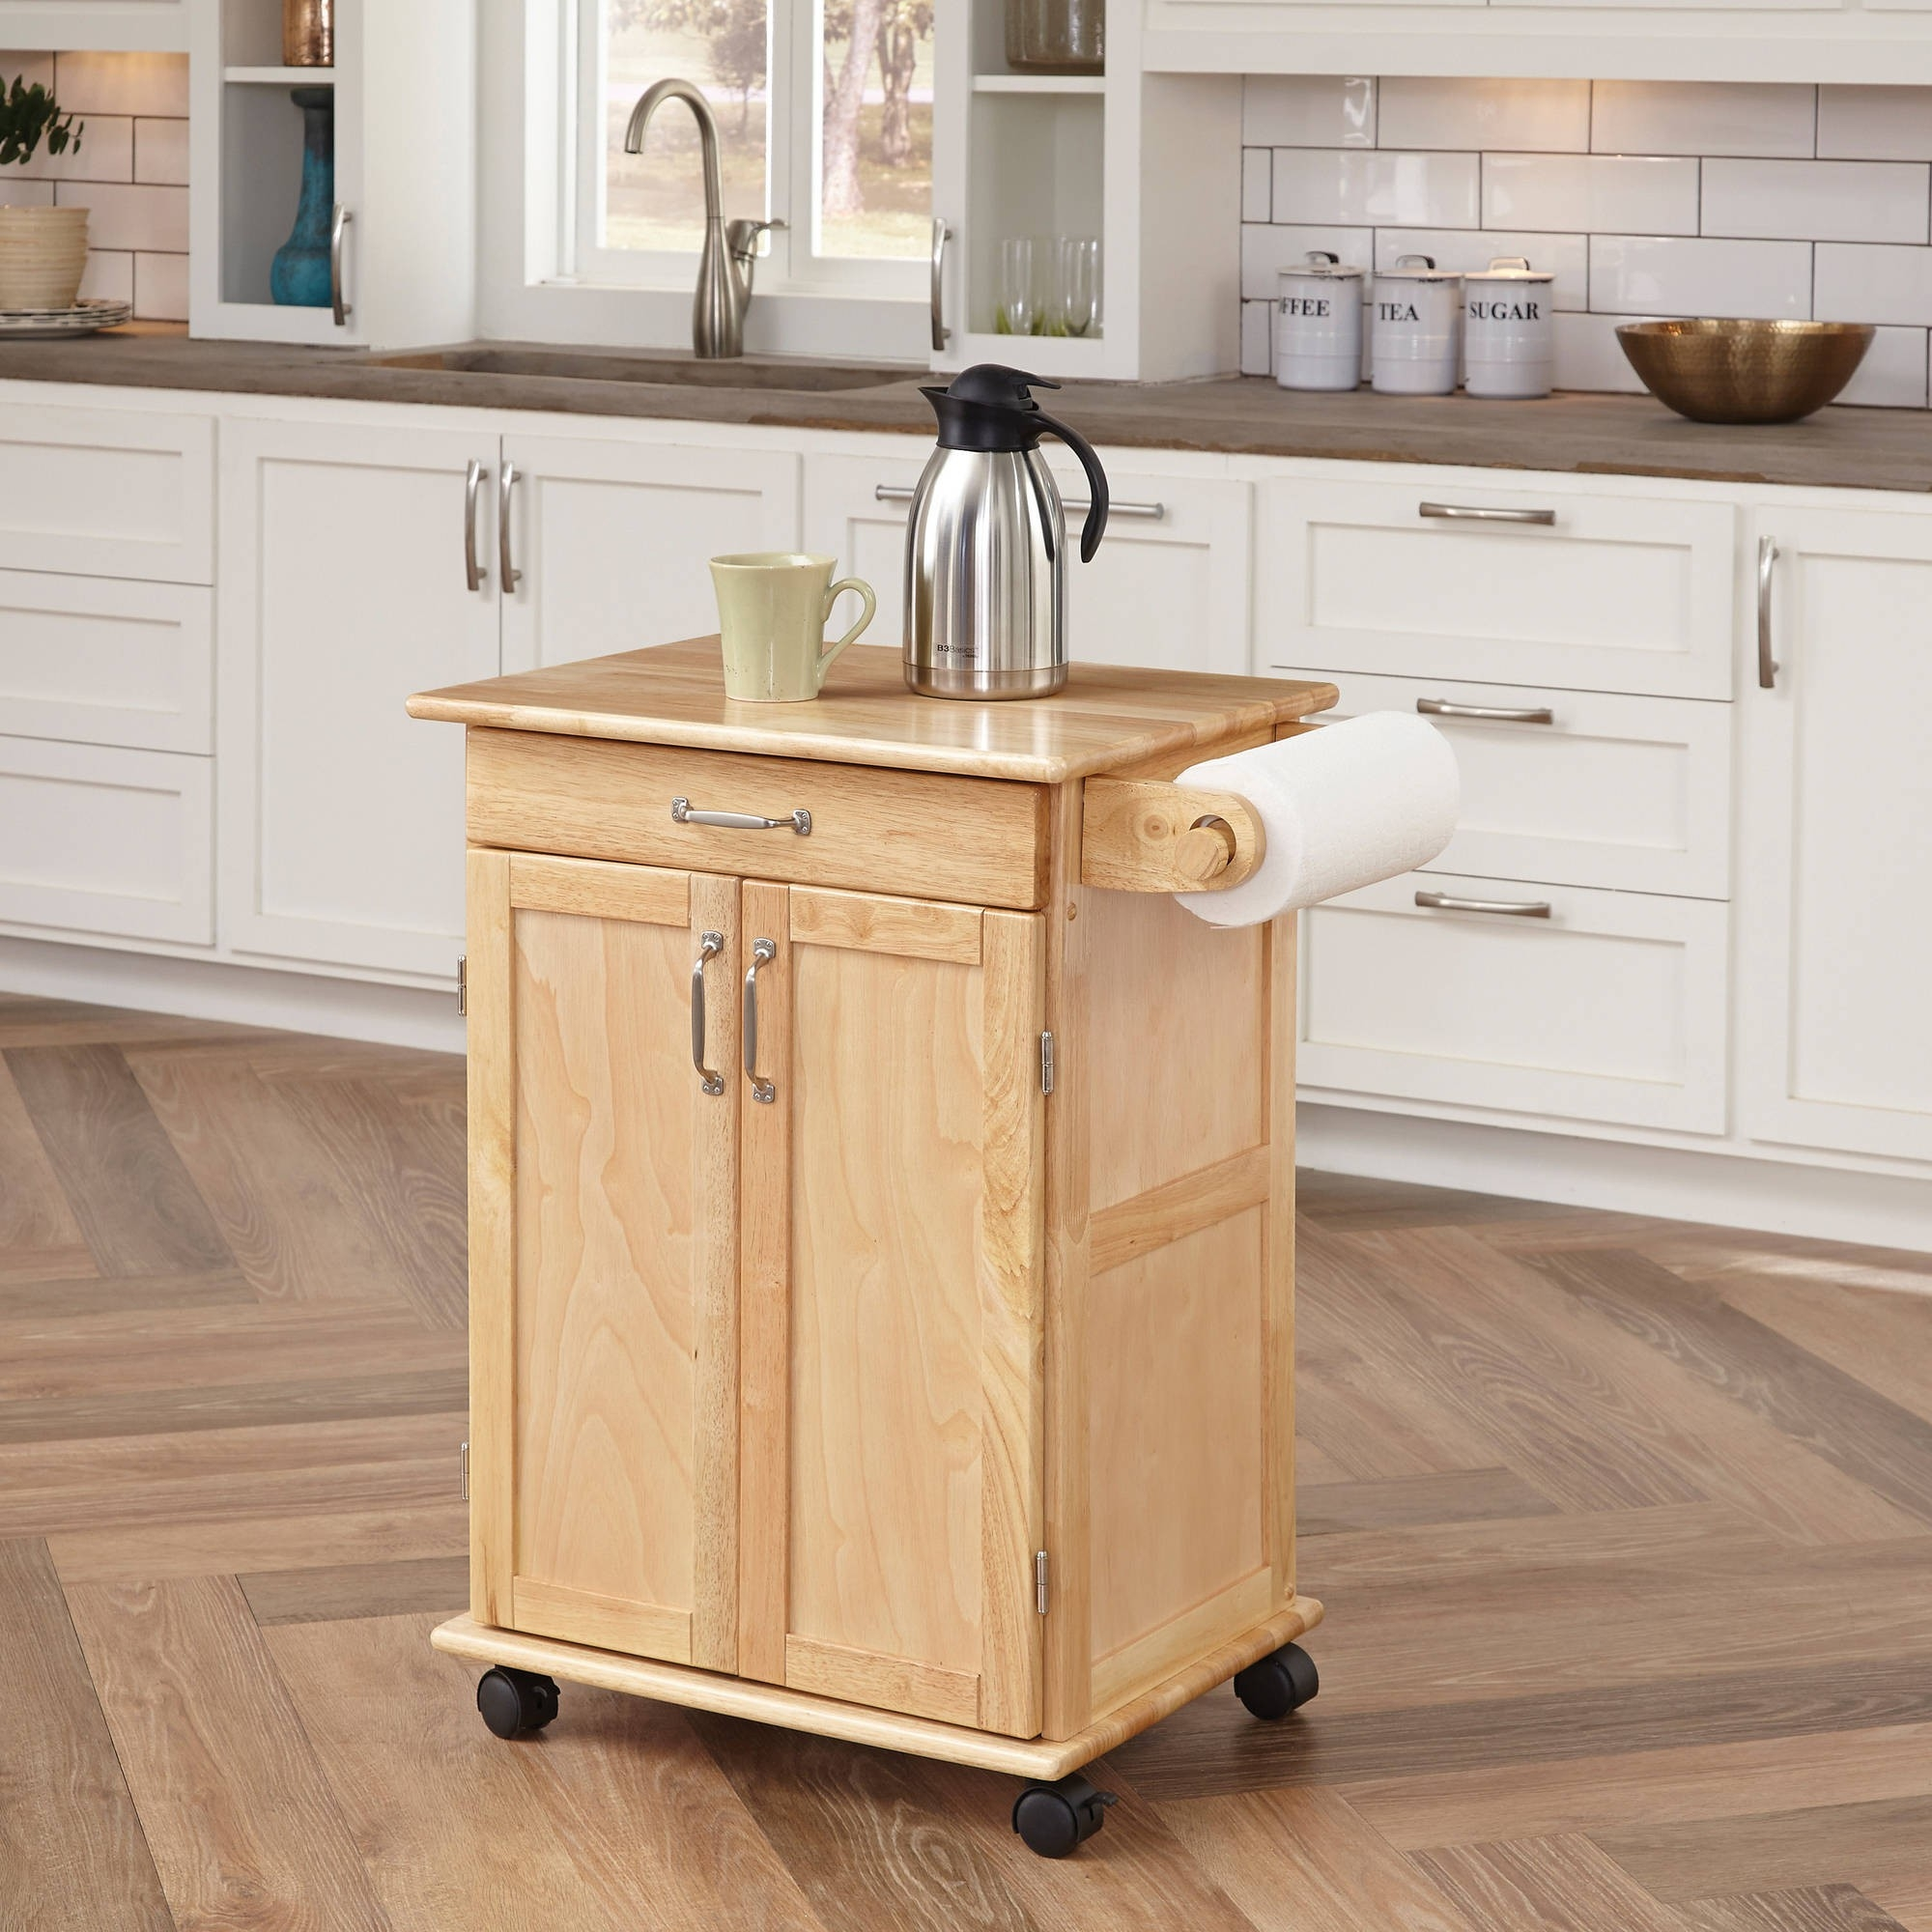 Kitchen Cabinets On Wheels Ideas On Foter